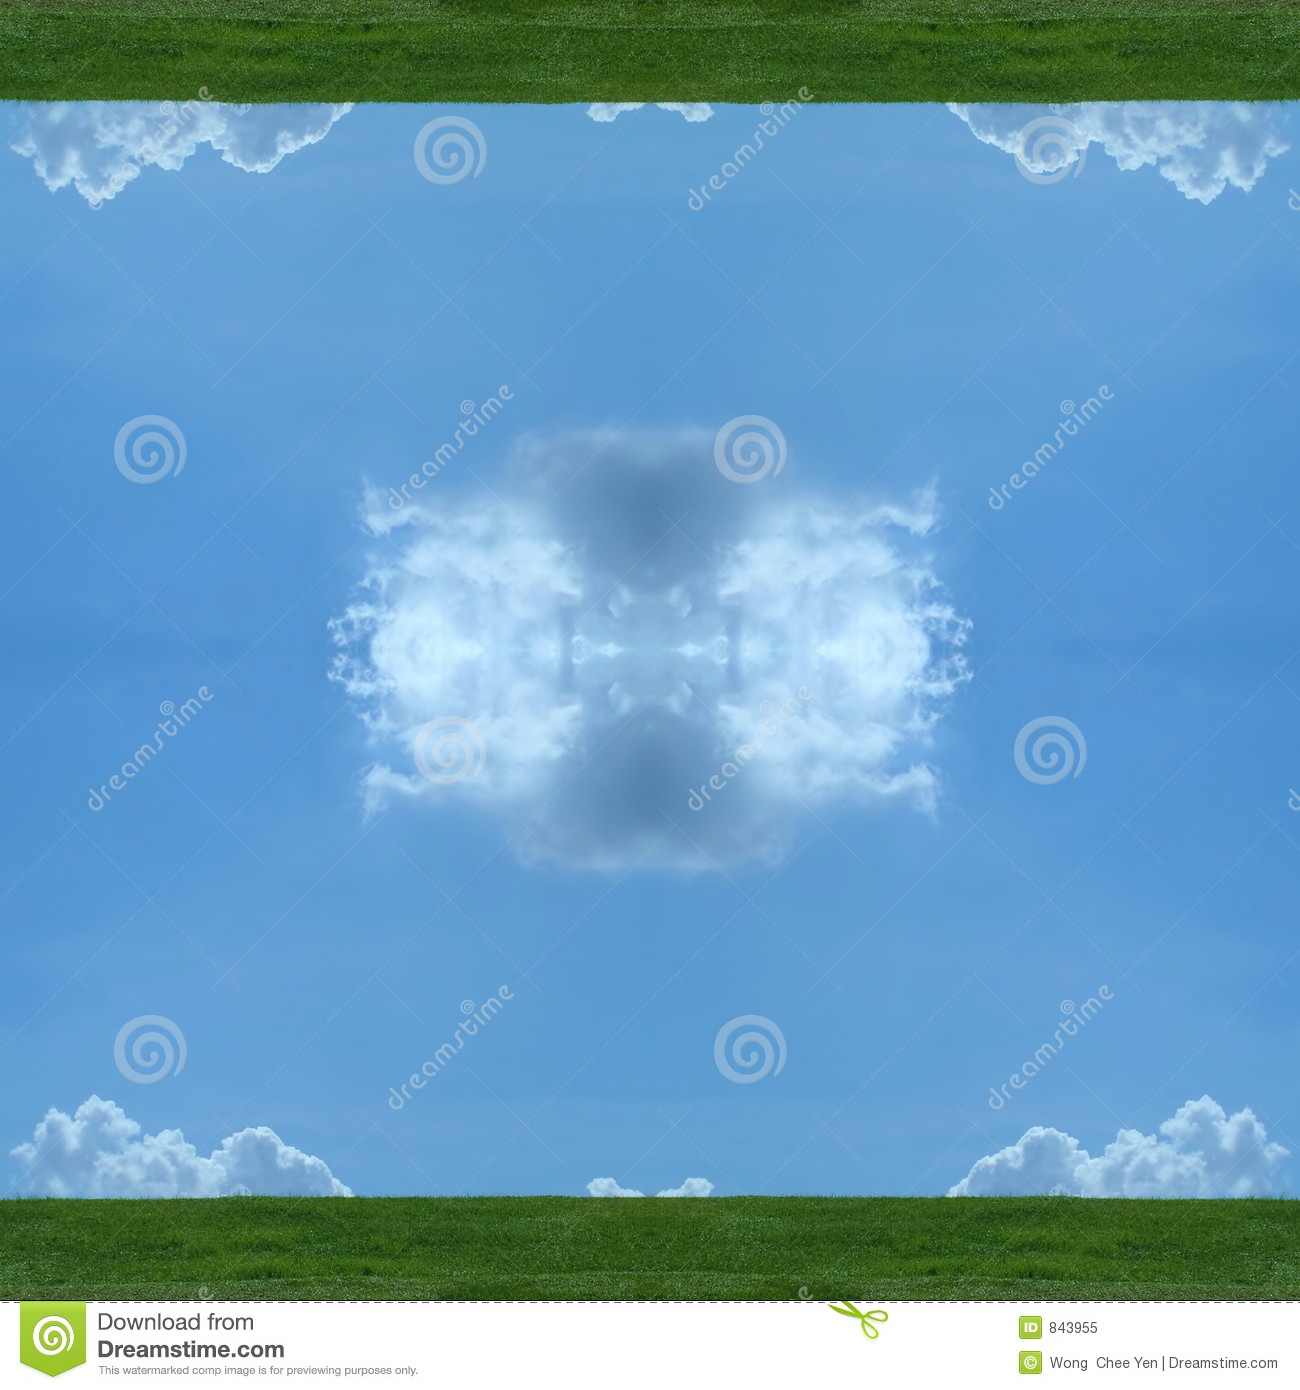 Sky, clouds and earth mirrored